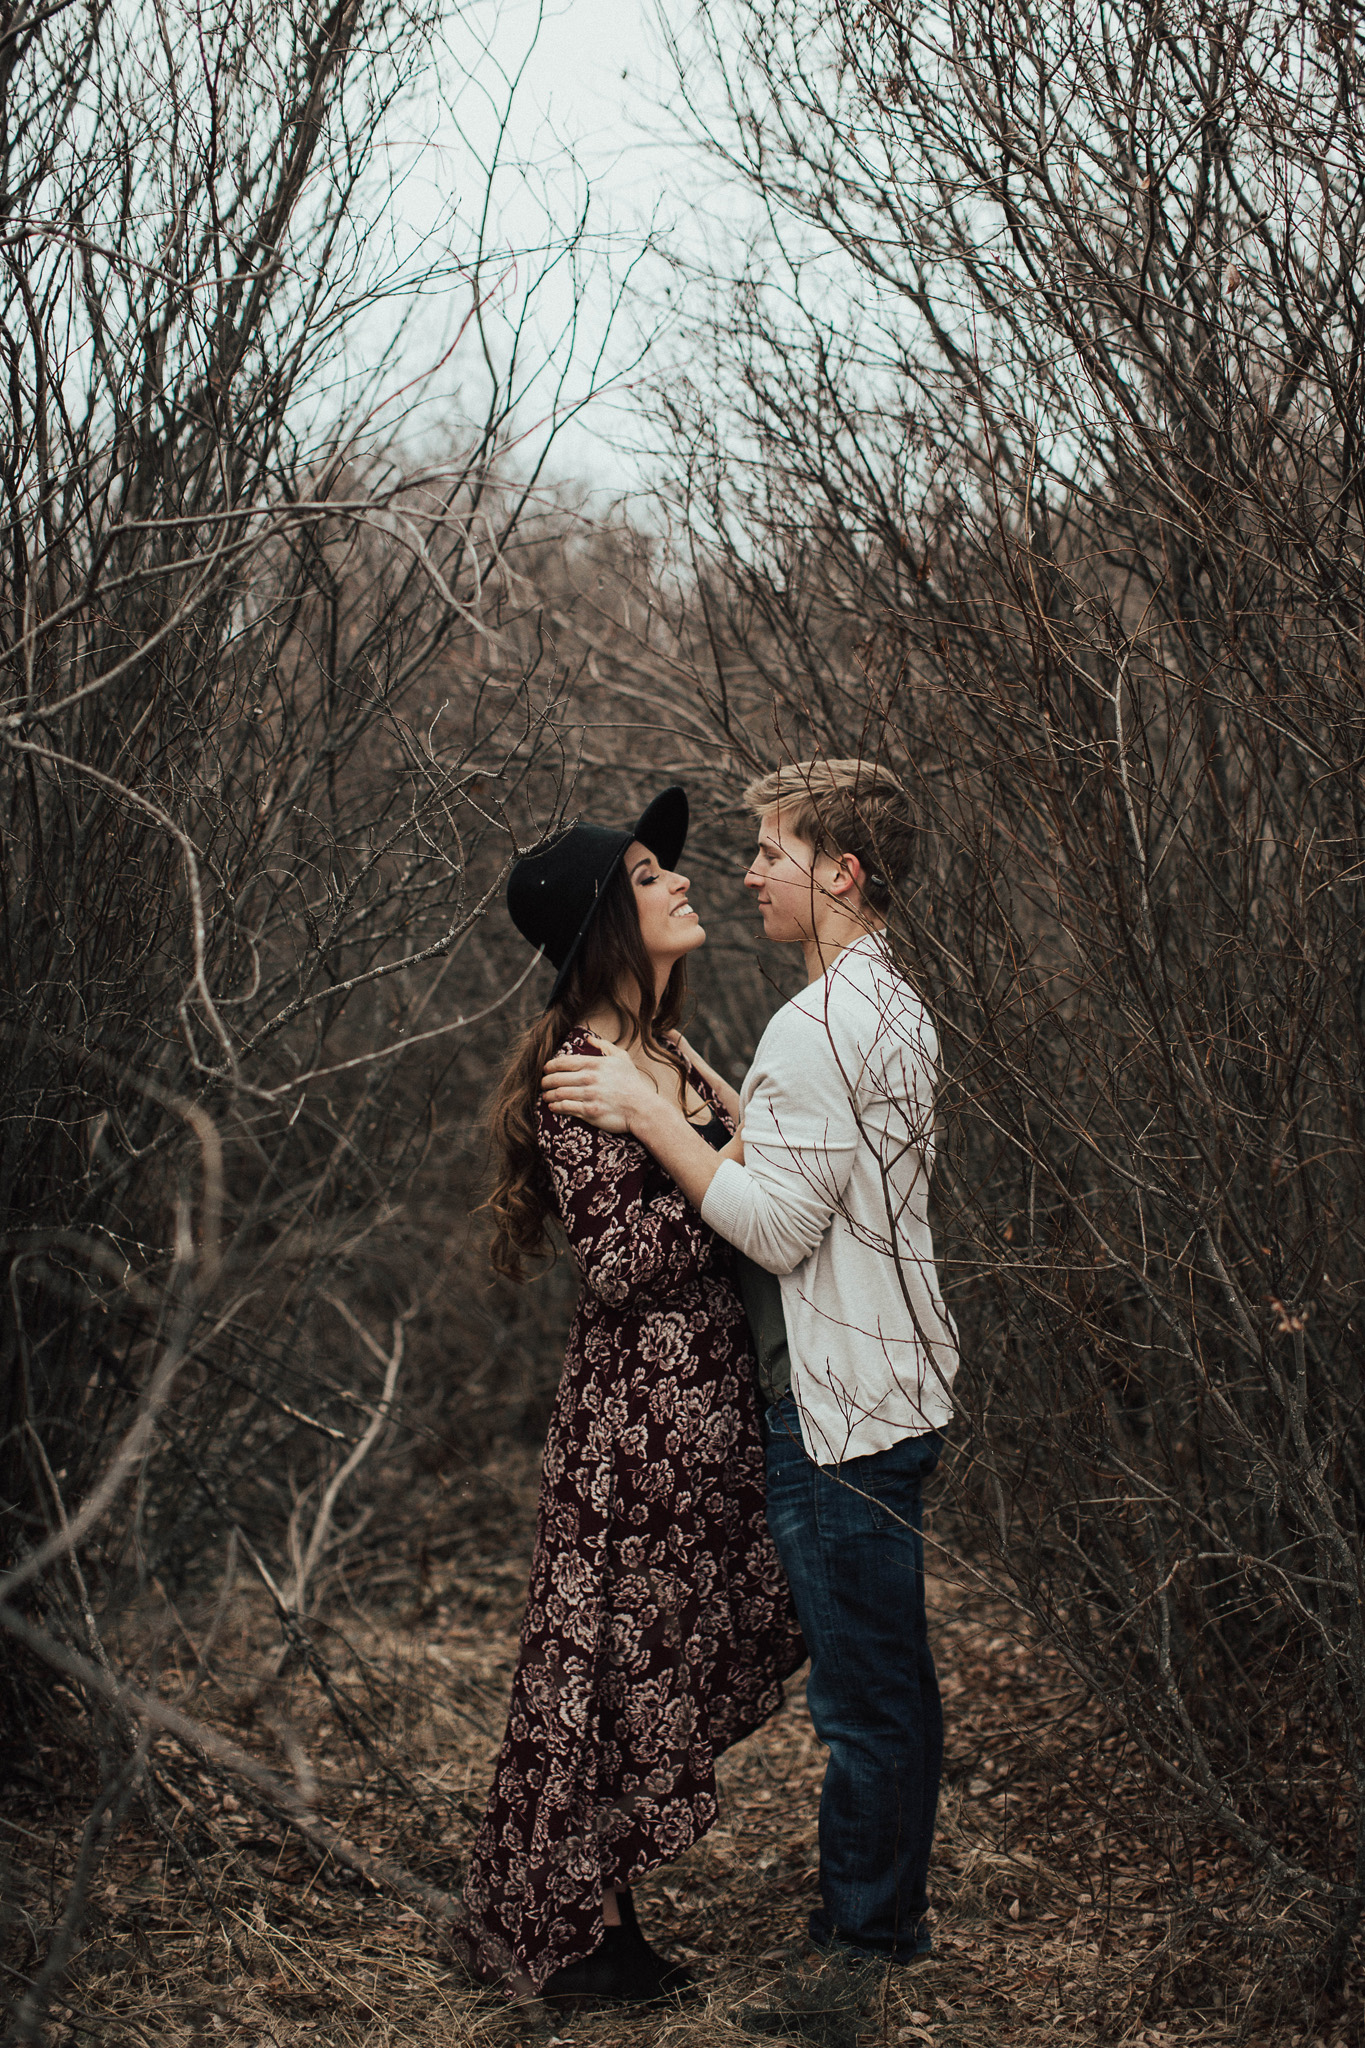 Edmonton Engagement Photographer - Michelle Larmand Photography - Mossy woods engagement session019